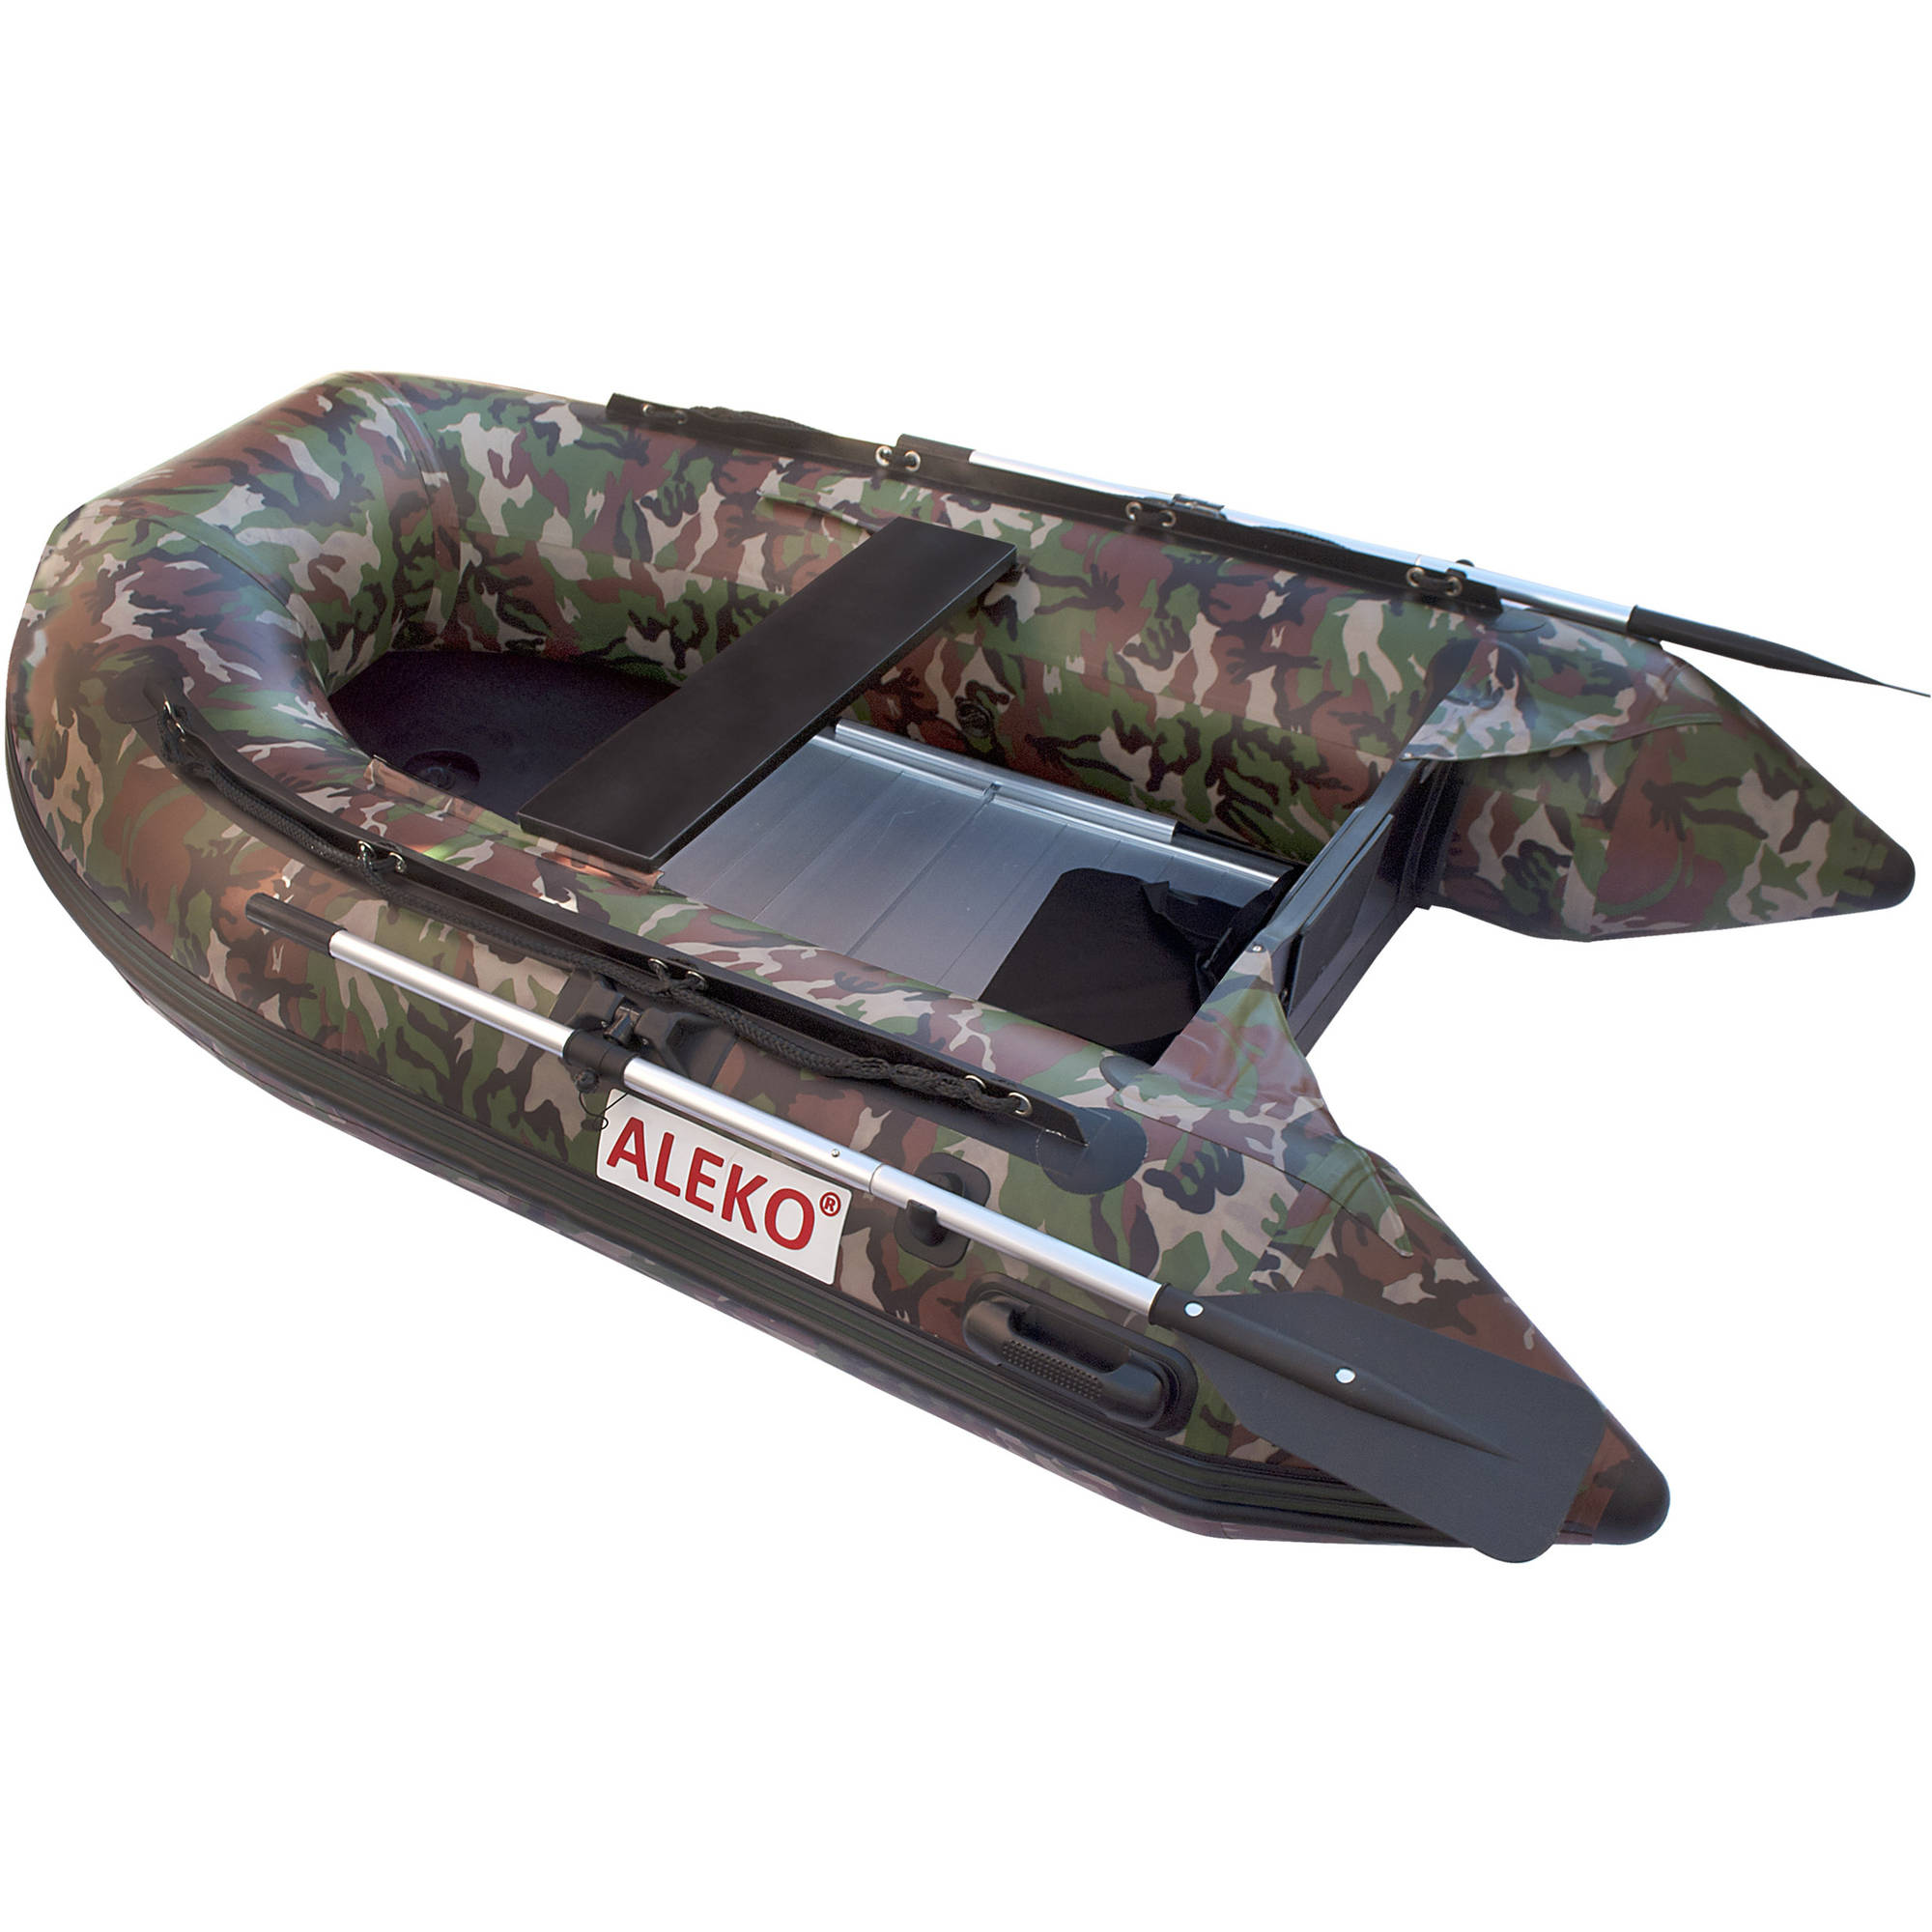 ALEKO BT250CM Inflatable 3-Person Fishing Boat with Aluminum Floor, 8.4', Camouflage by ALEKO